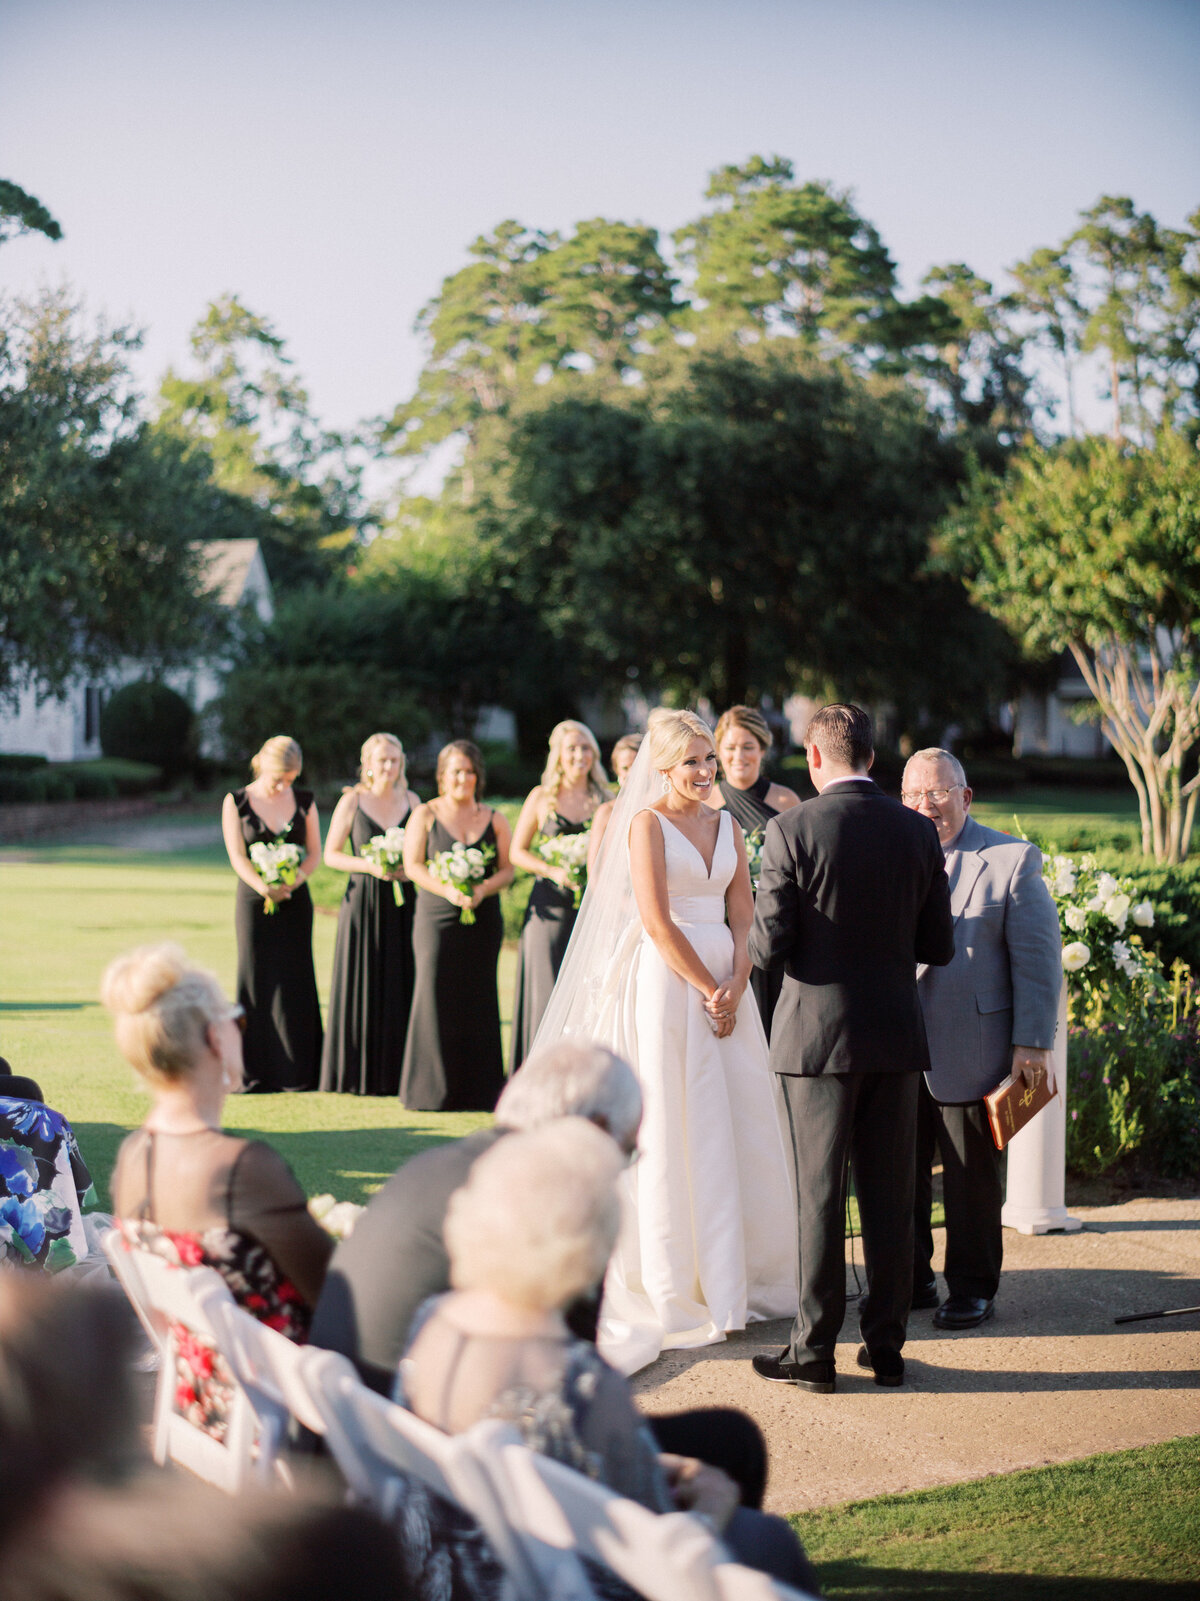 Belfair-Plantation-Bluffton-Hilton-Head-Island-Wedding-Philip-Casey-Photo-50